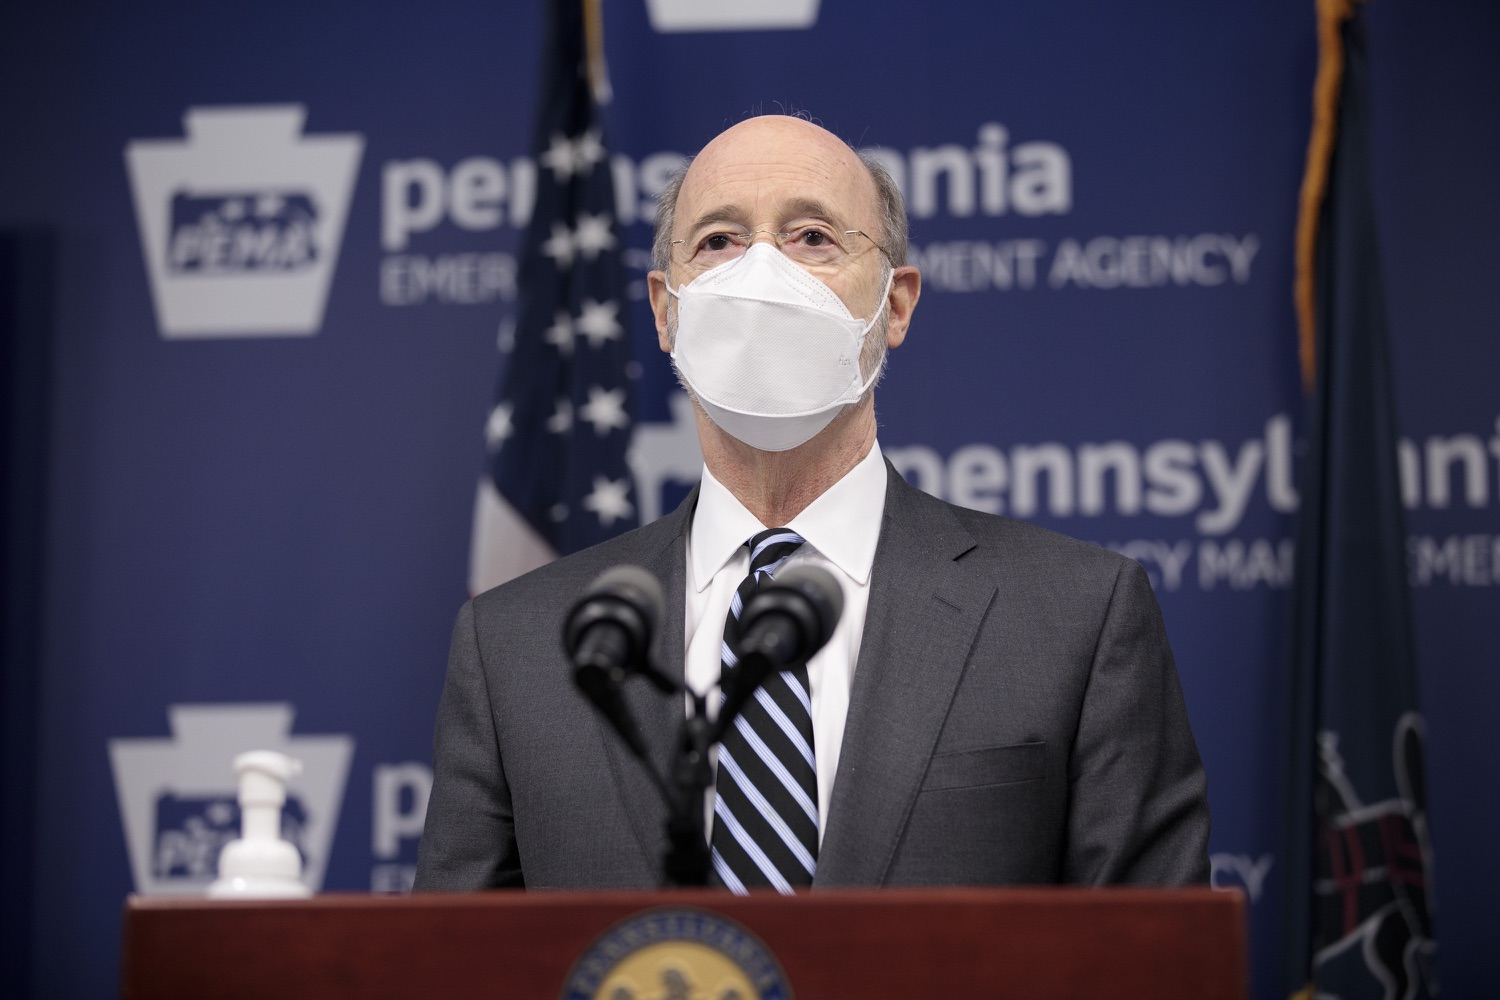 "<a href=""https://filesource.wostreaming.net/commonwealthofpa/photo/18521_gov_minimumWage_dz_16.jpg"" target=""_blank"">⇣ Download Photo<br></a>Pennsylvania Governor Tom Wolf answers questions from the press.  Building on his plan to cut personal income taxes for 2.8 million Pennsylvanians, Governor Tom Wolf wants to help thousands of essential workers struggling to buy food and avoid homelessness because of poverty wages. Today, the governor renewed his call to increase the states embarrassingly low minimum wage to $12 per hour on July 1, with annual increases of $0.50 until reaching $15 per hour on July 1, 2027. FEBRUARY 09, 2021 - HARRISBURG, PA"